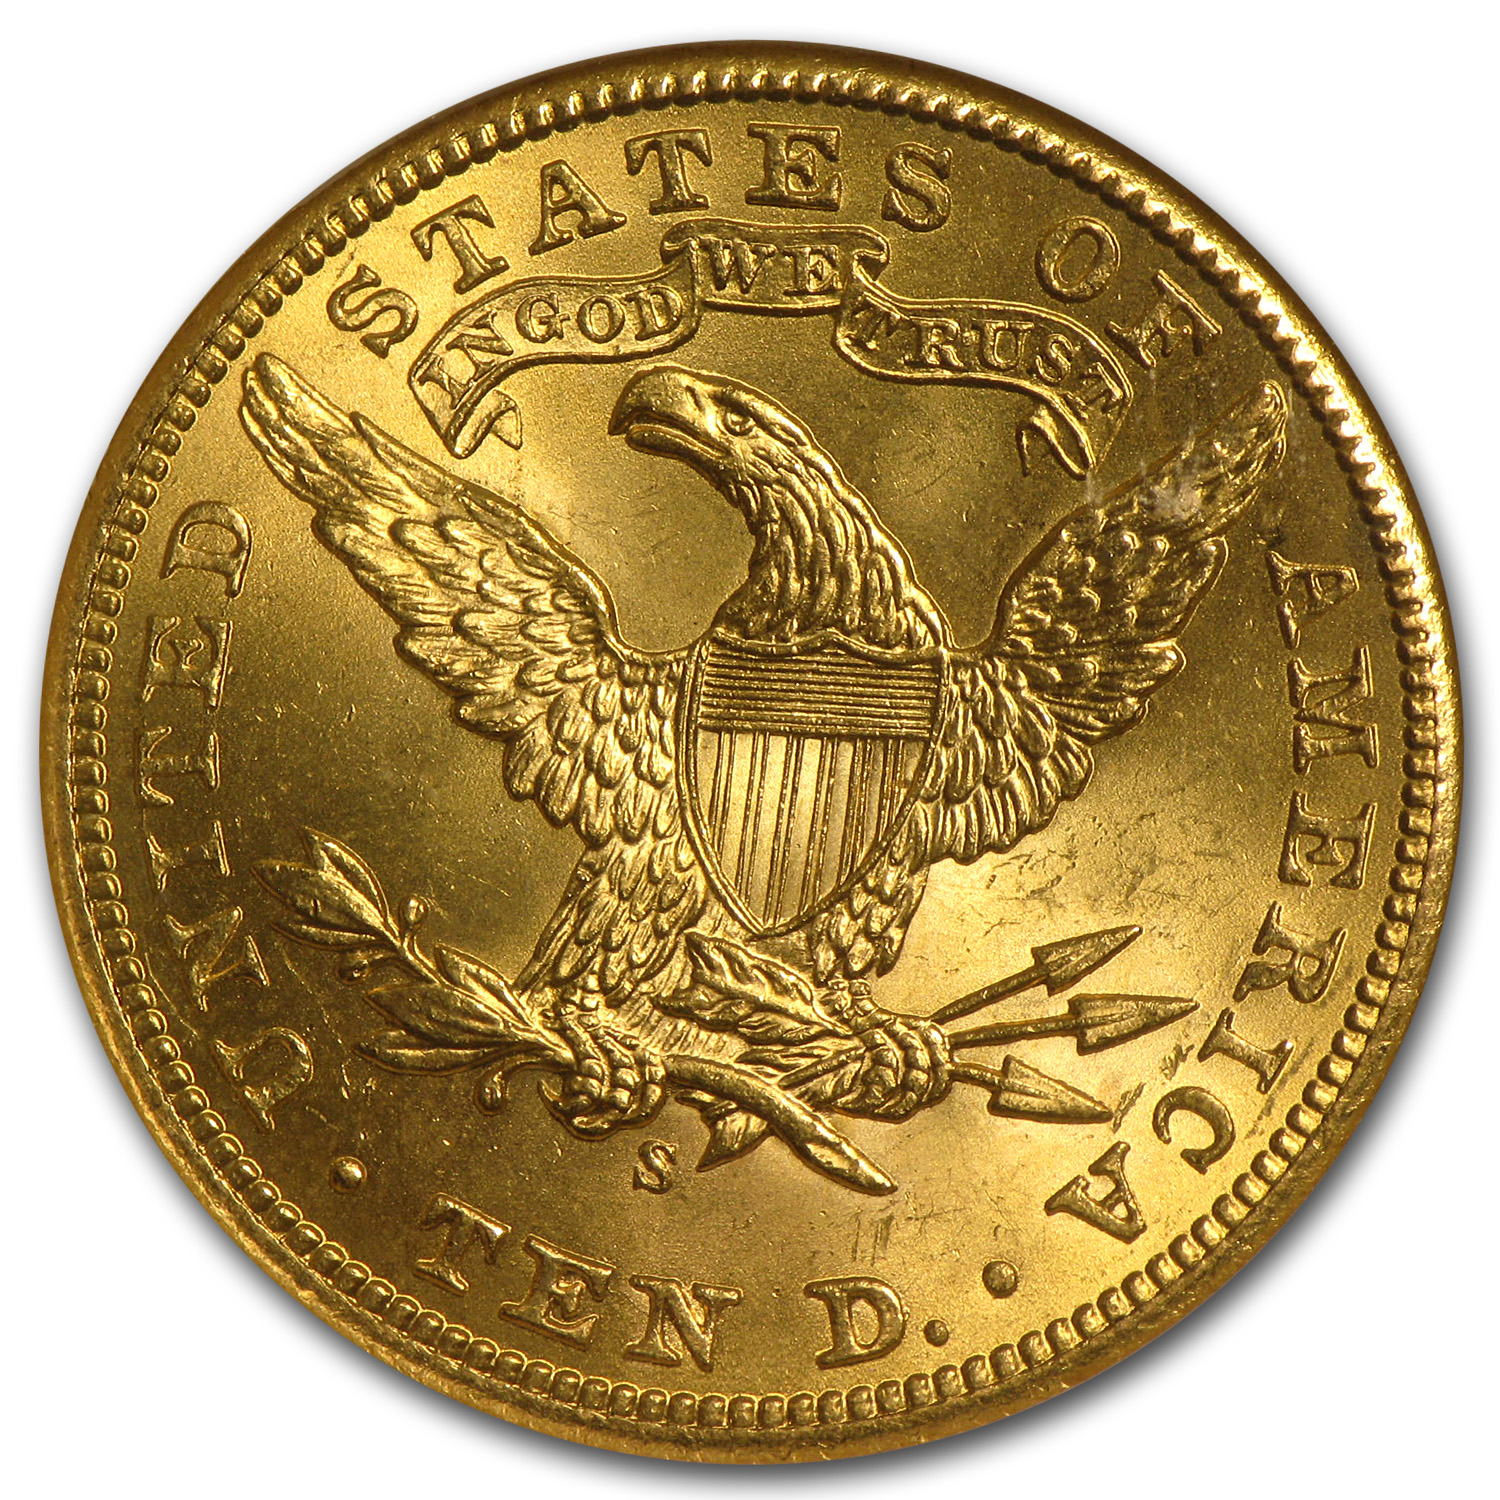 $10 Liberty Gold Eagle - MS-64 PCGS/NGC CAC